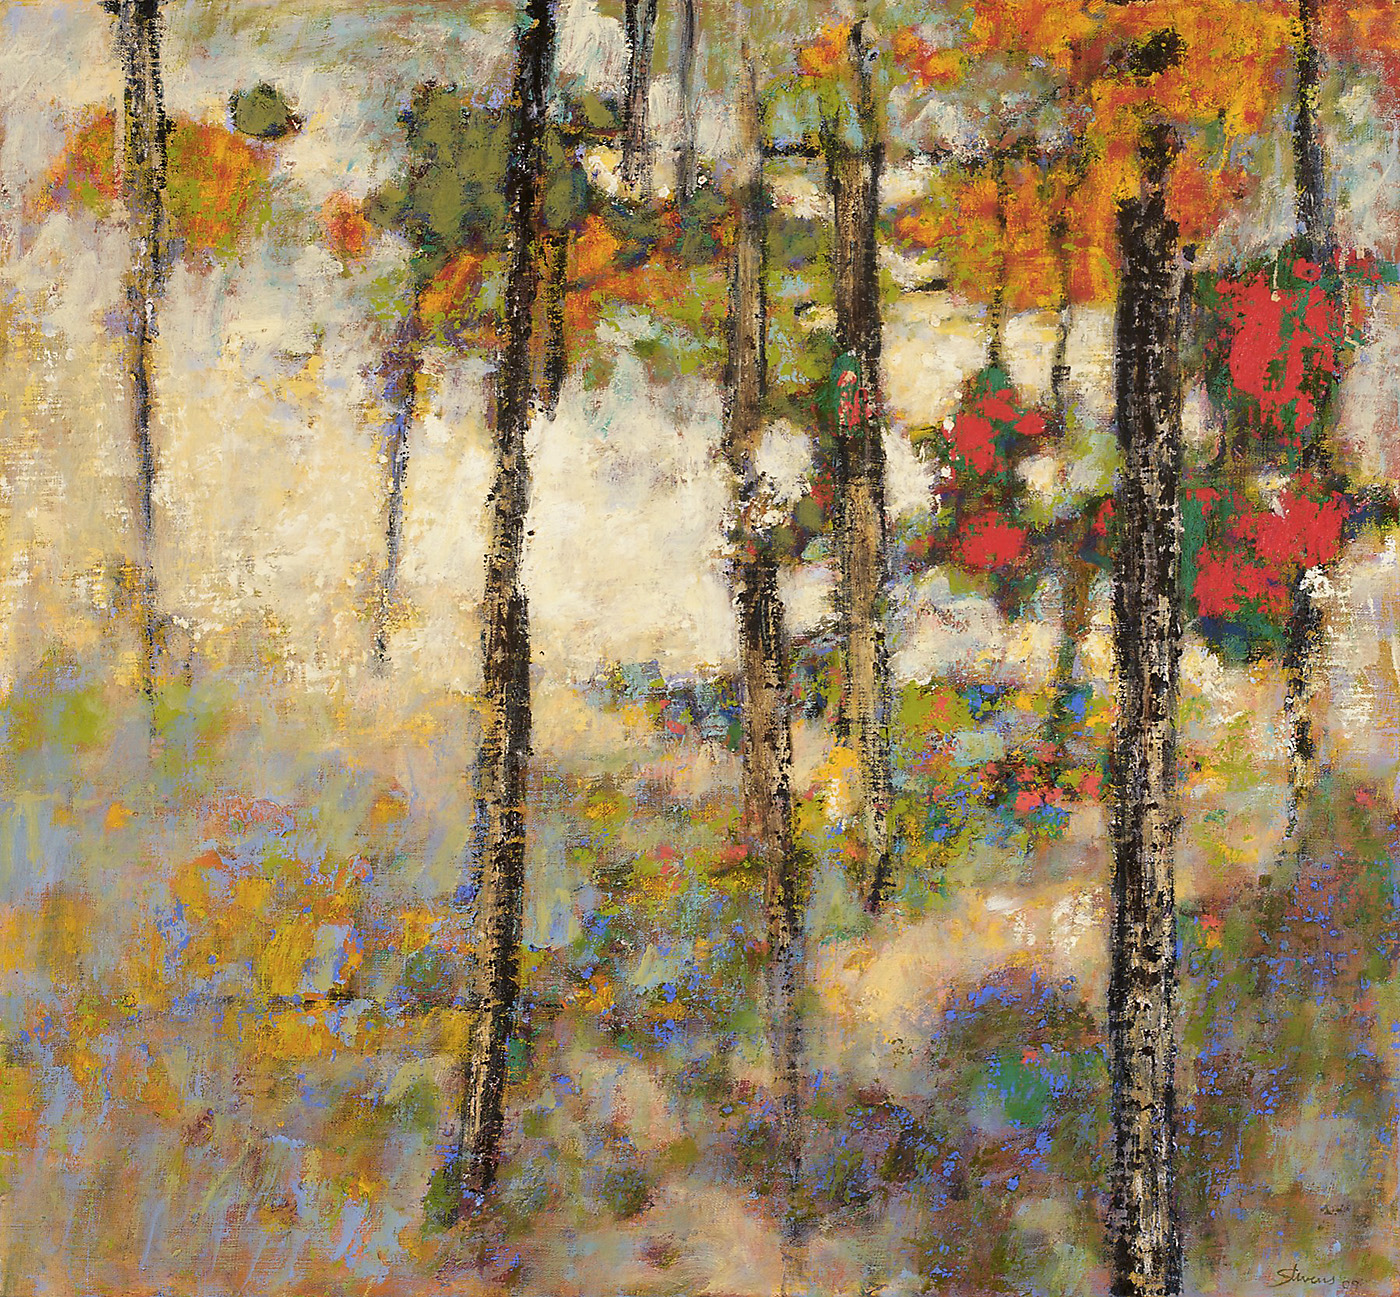 Structures of Wilderness   | oil on linen | 26 x 28"